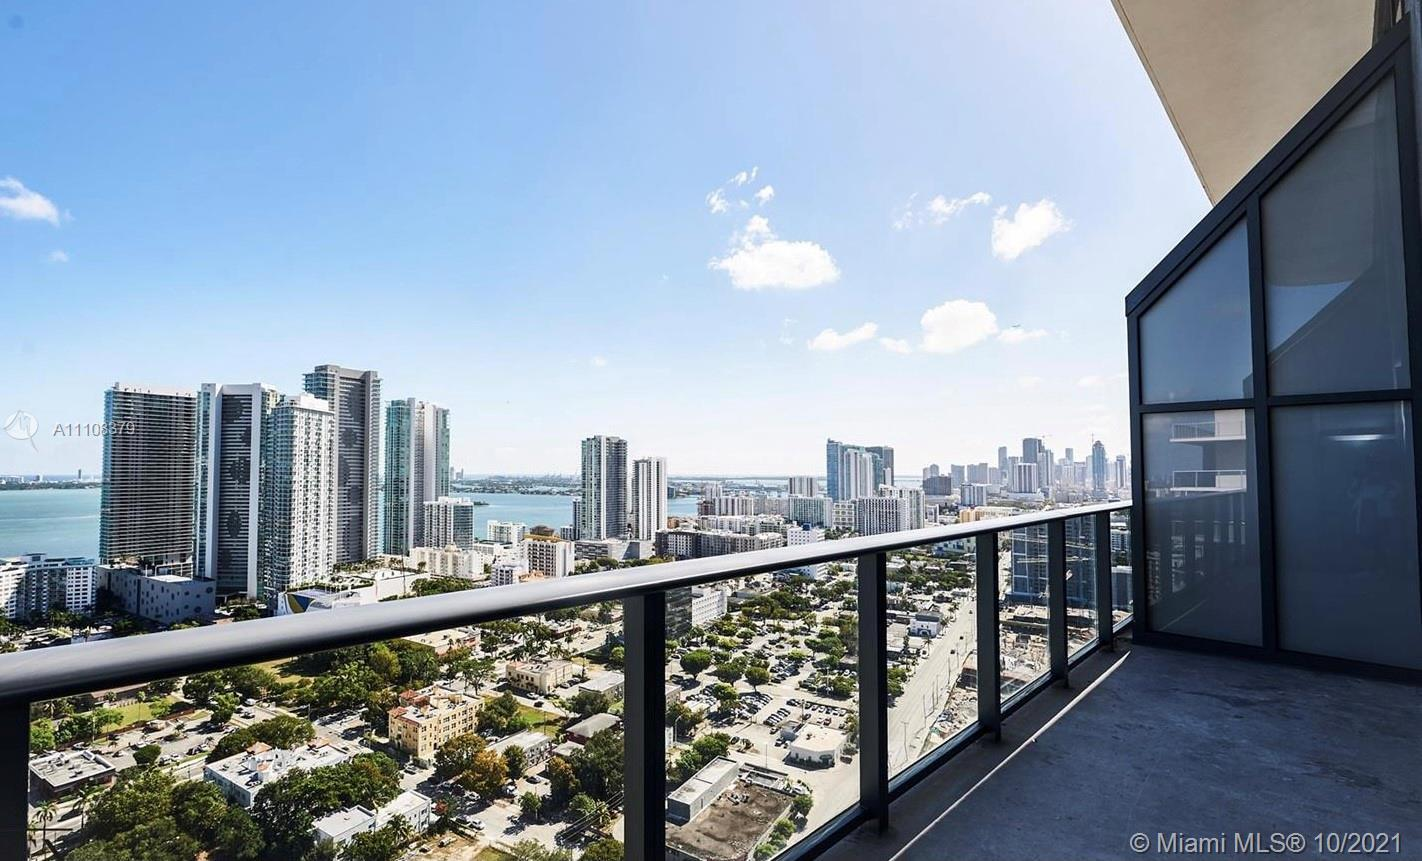 TRI LEVEL PENTHOUSE WITH BREATHTAKING CITY AND BAY VIEWS. IMPECCABLE 3 BEDROOMS/3,5 BATHROOMS UNIT F